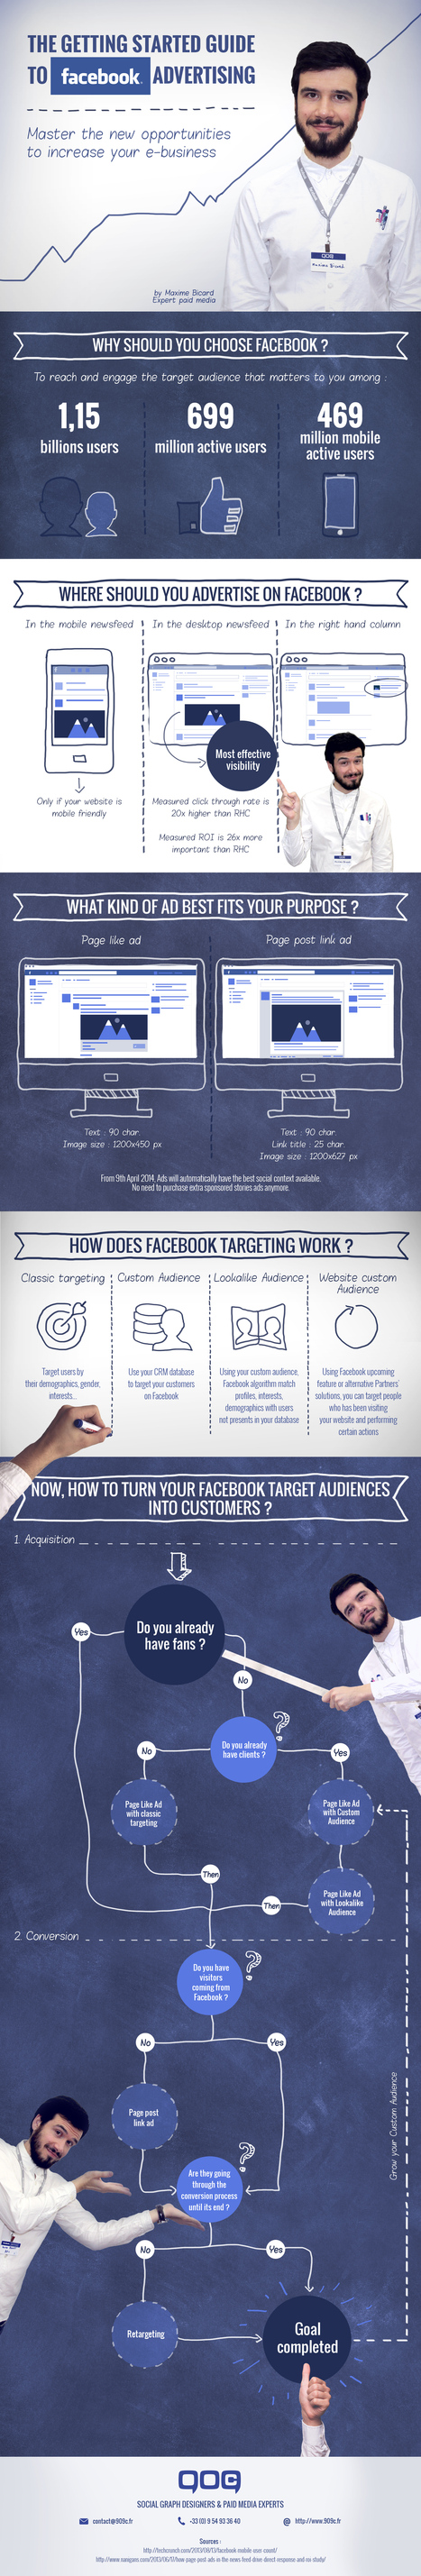 Infographic: Getting started with Facebook Ads | Social Networker | Scoop.it